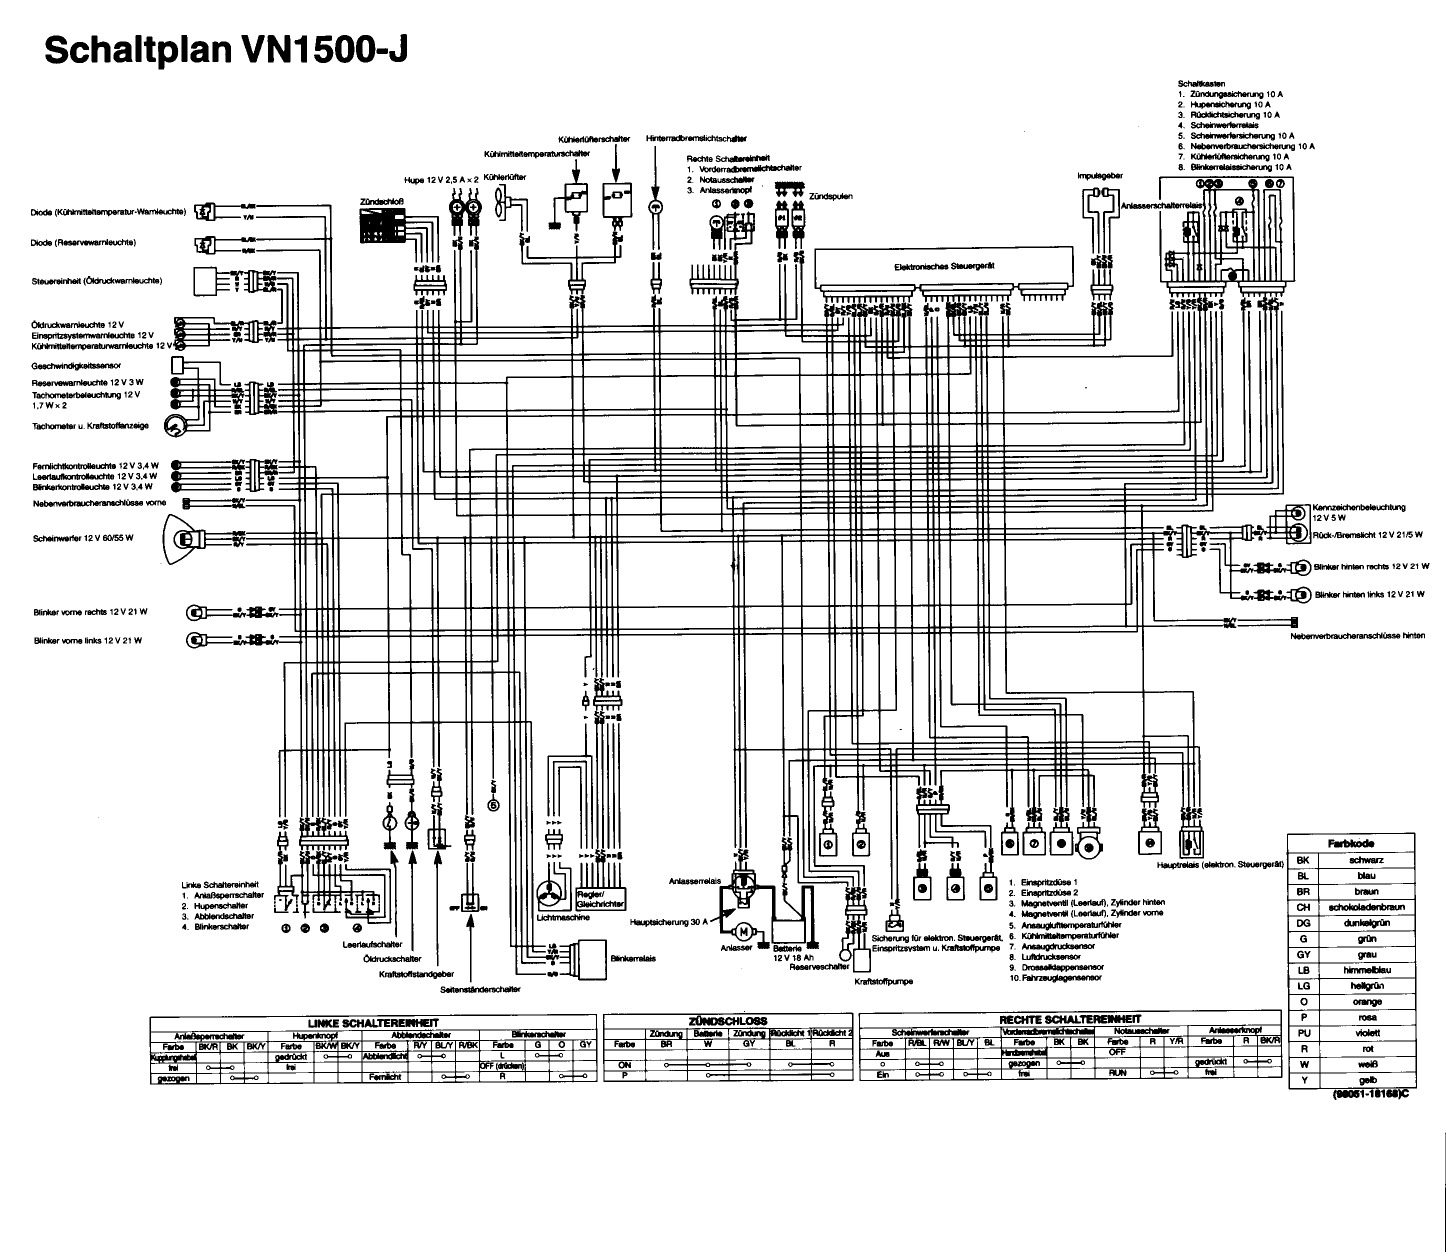 Suzuki Samurai Wiring Diagram together with Kawasaki Vulcan 900 Fuse Box likewise Honda Gl Wiring Diagrams Html moreover Suzuki Gs 500 Engine Diagram in addition 1987 Suzuki Intruder Wiring Schematics. on suzuki savage 650 wiring diagram